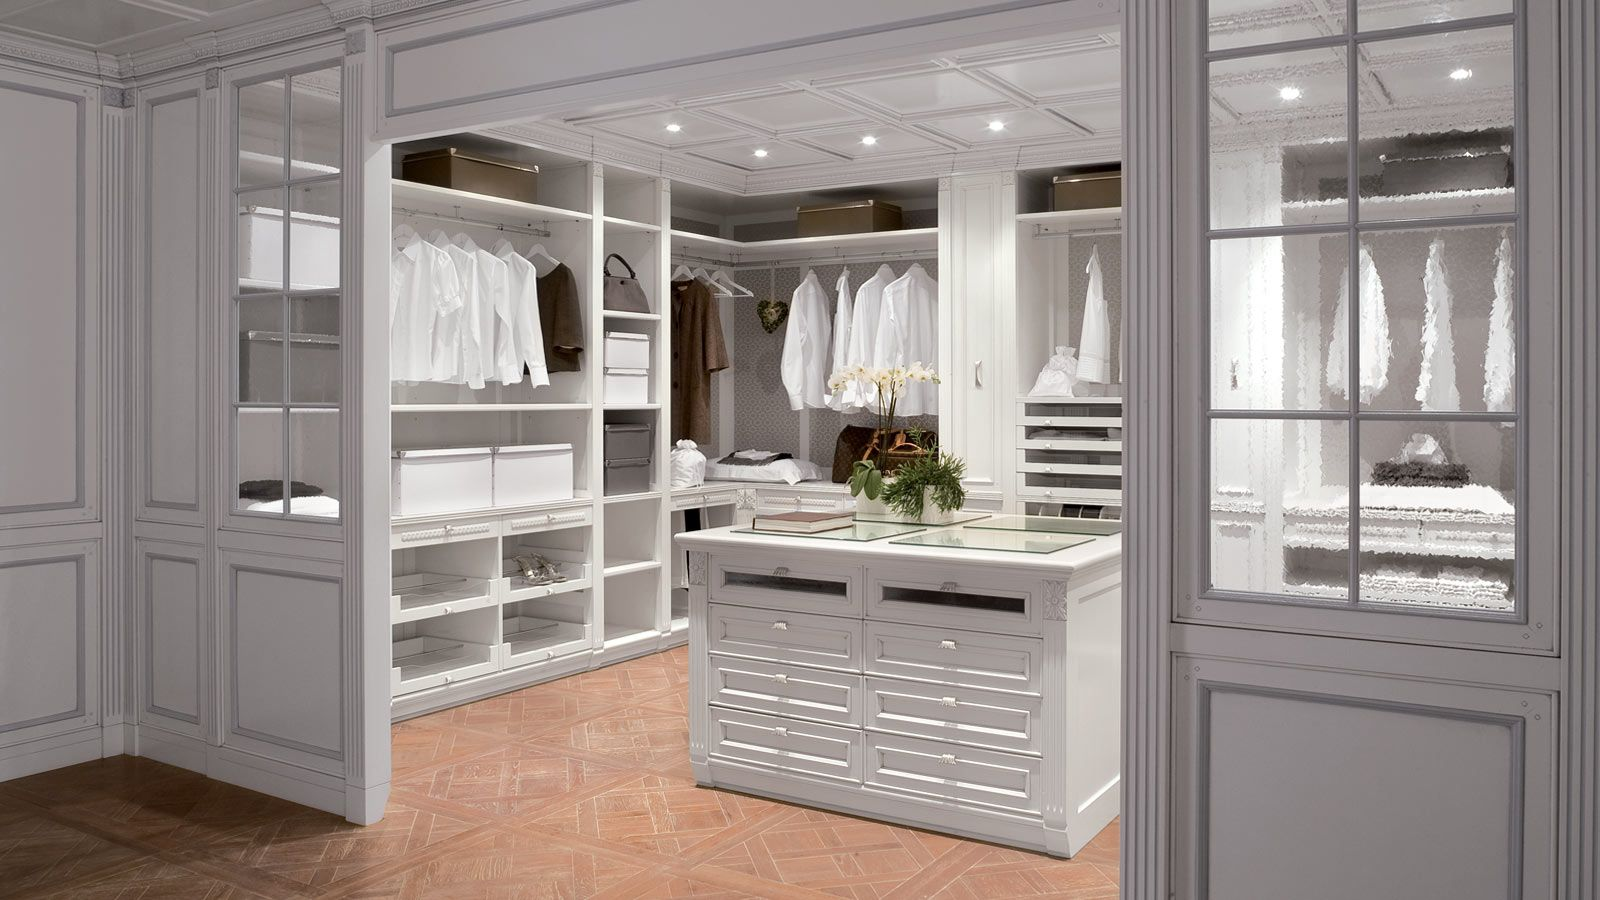 20 Walk In Closet Designs That Are Second To None Dressing Room Design Walk In Closet Design Master Bedroom Closet